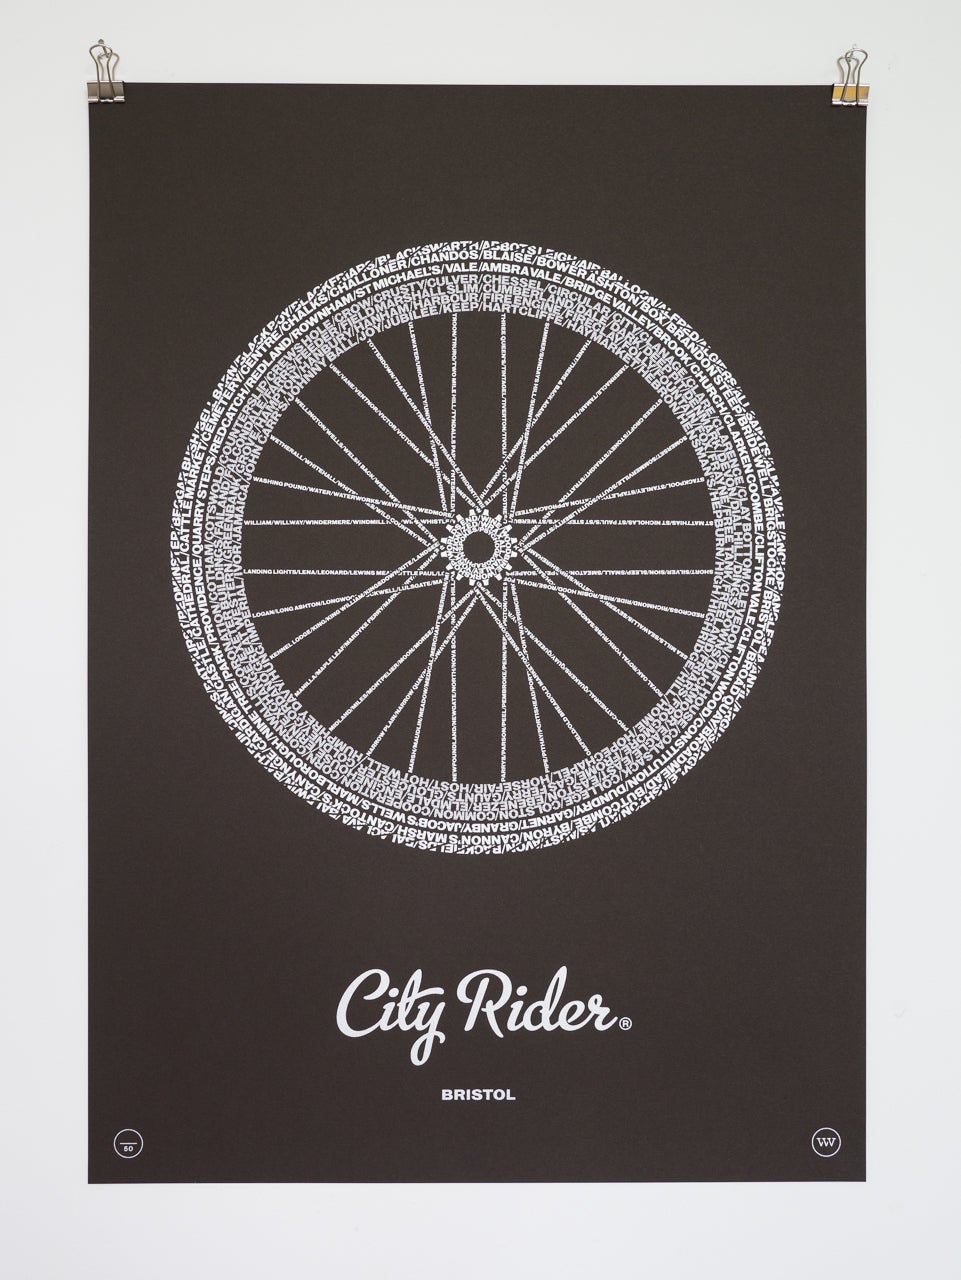 Image of City Rider, Bristol (Bitter Chocolate)